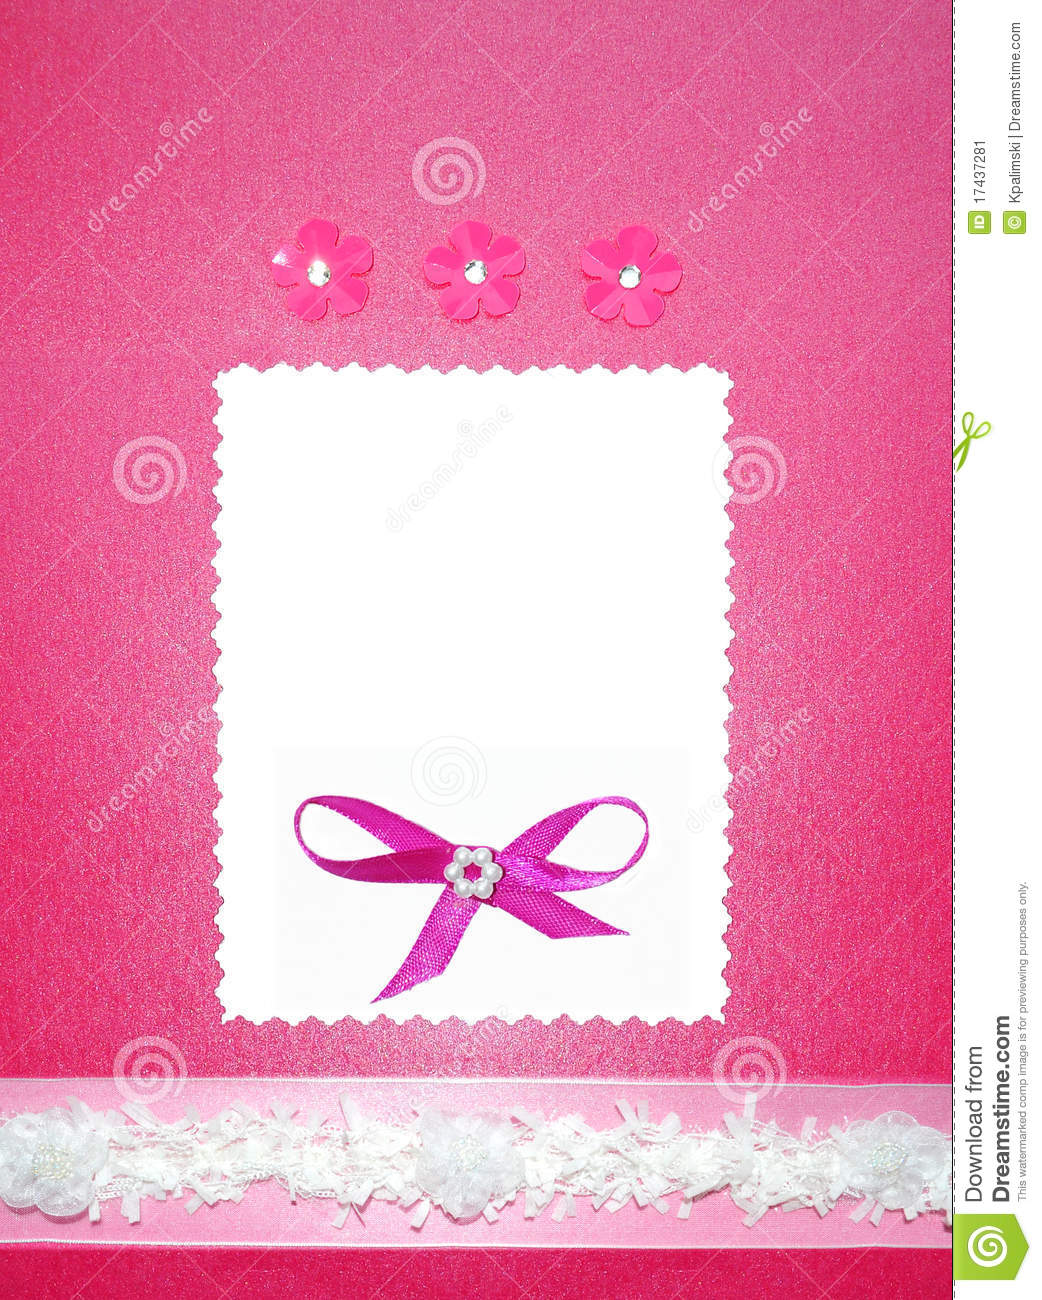 Pink wedding paper card invitation or photo frame stock for Wedding invitation cards photo frame